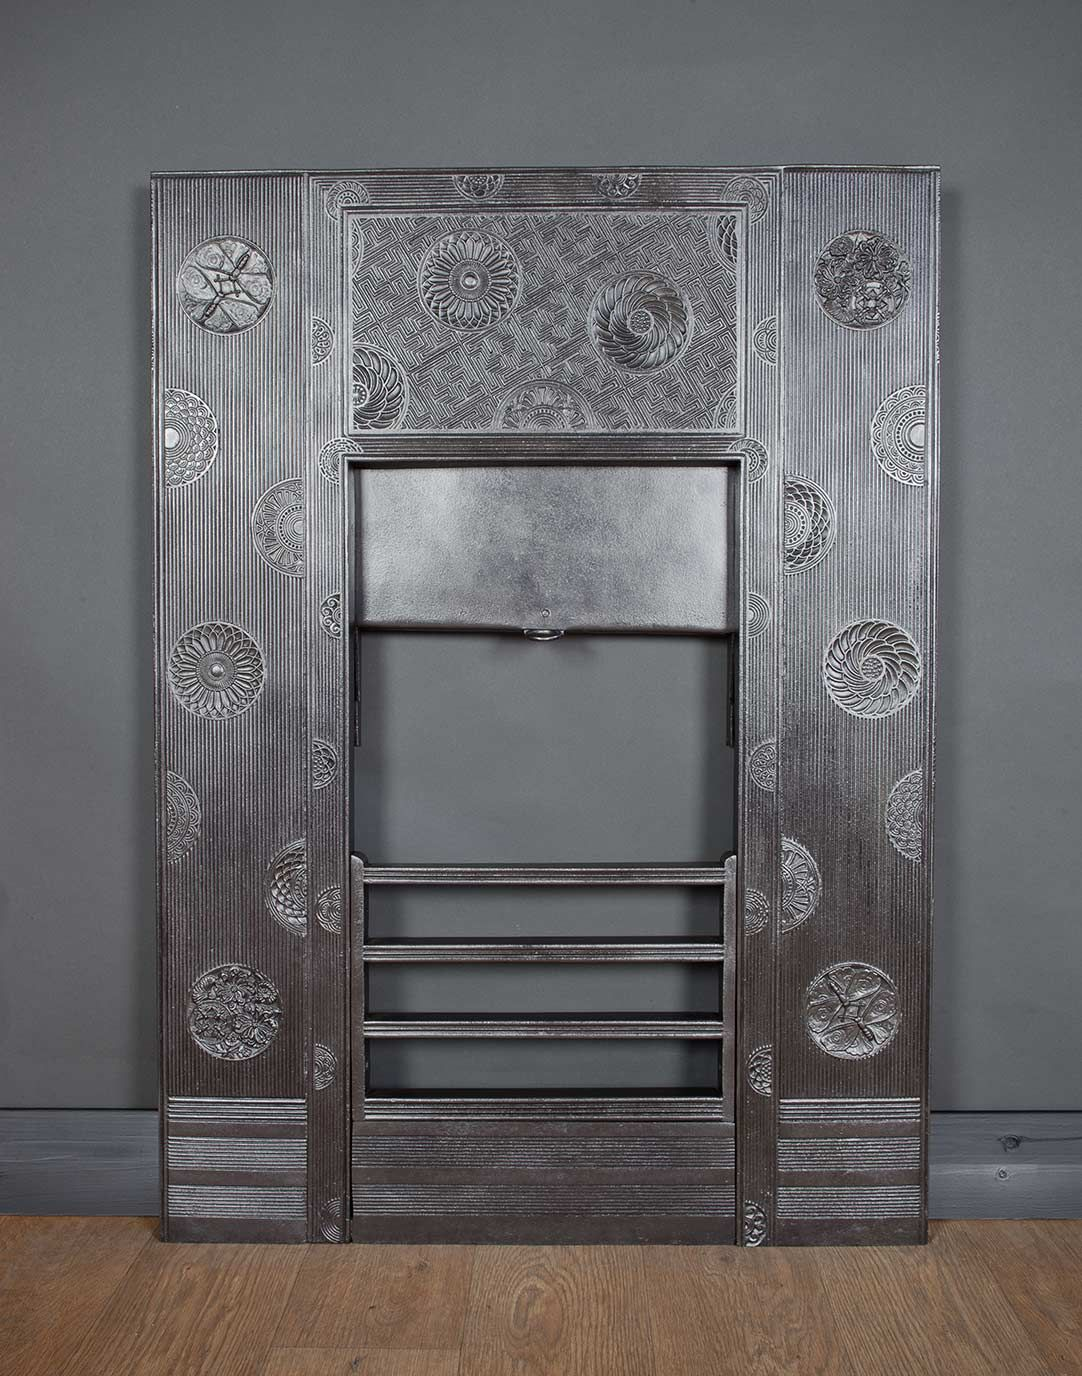 thomas jeckyll antique fireplace a beautiful antique cast iron